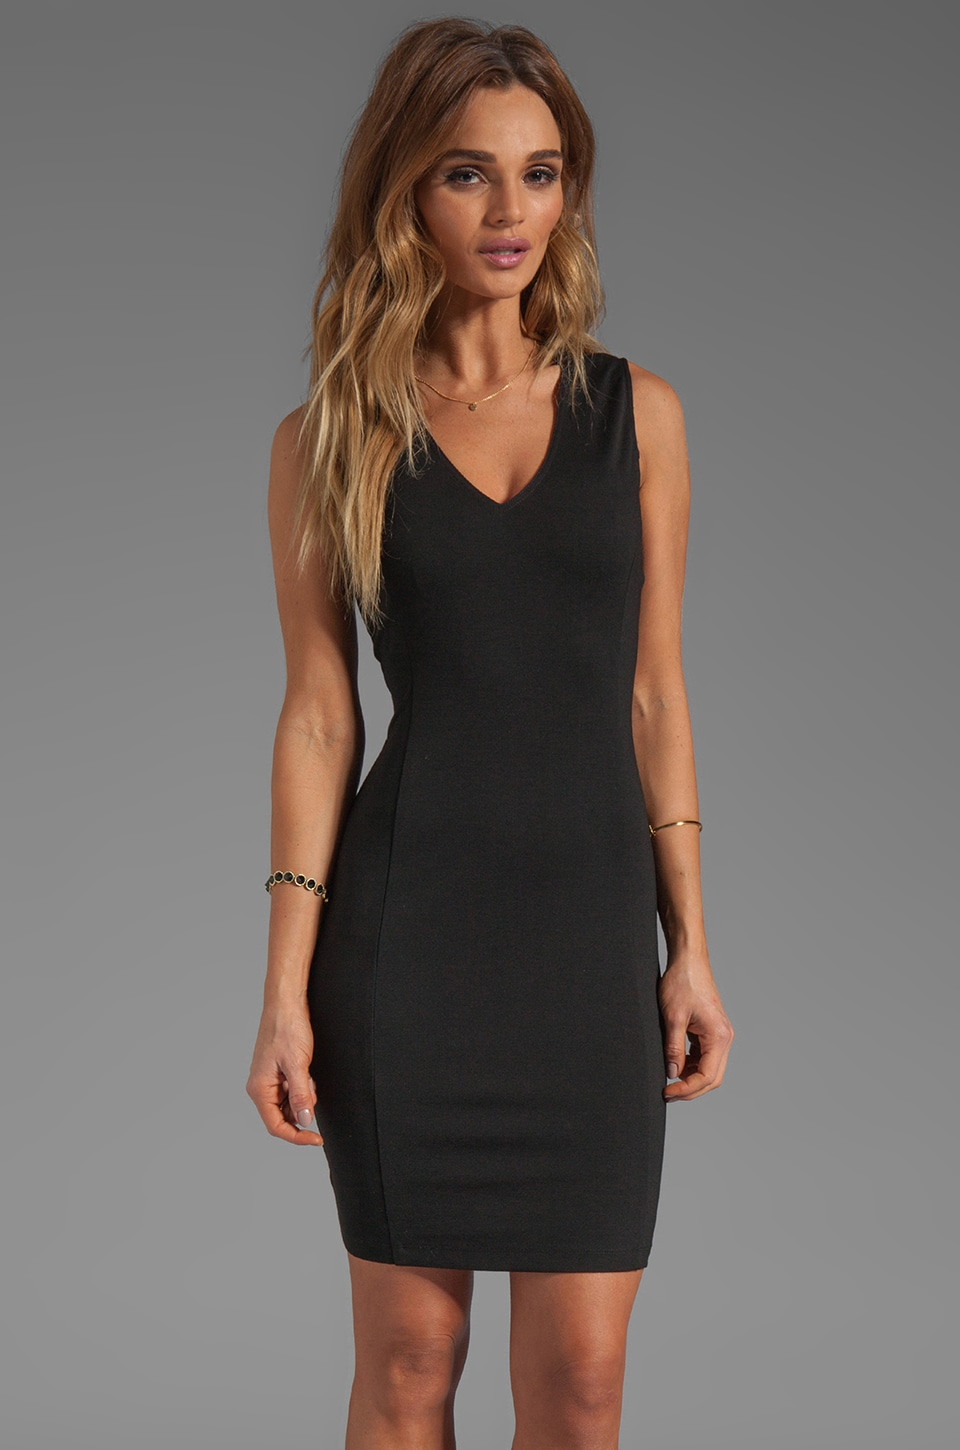 Theory Adoxa dress in Black